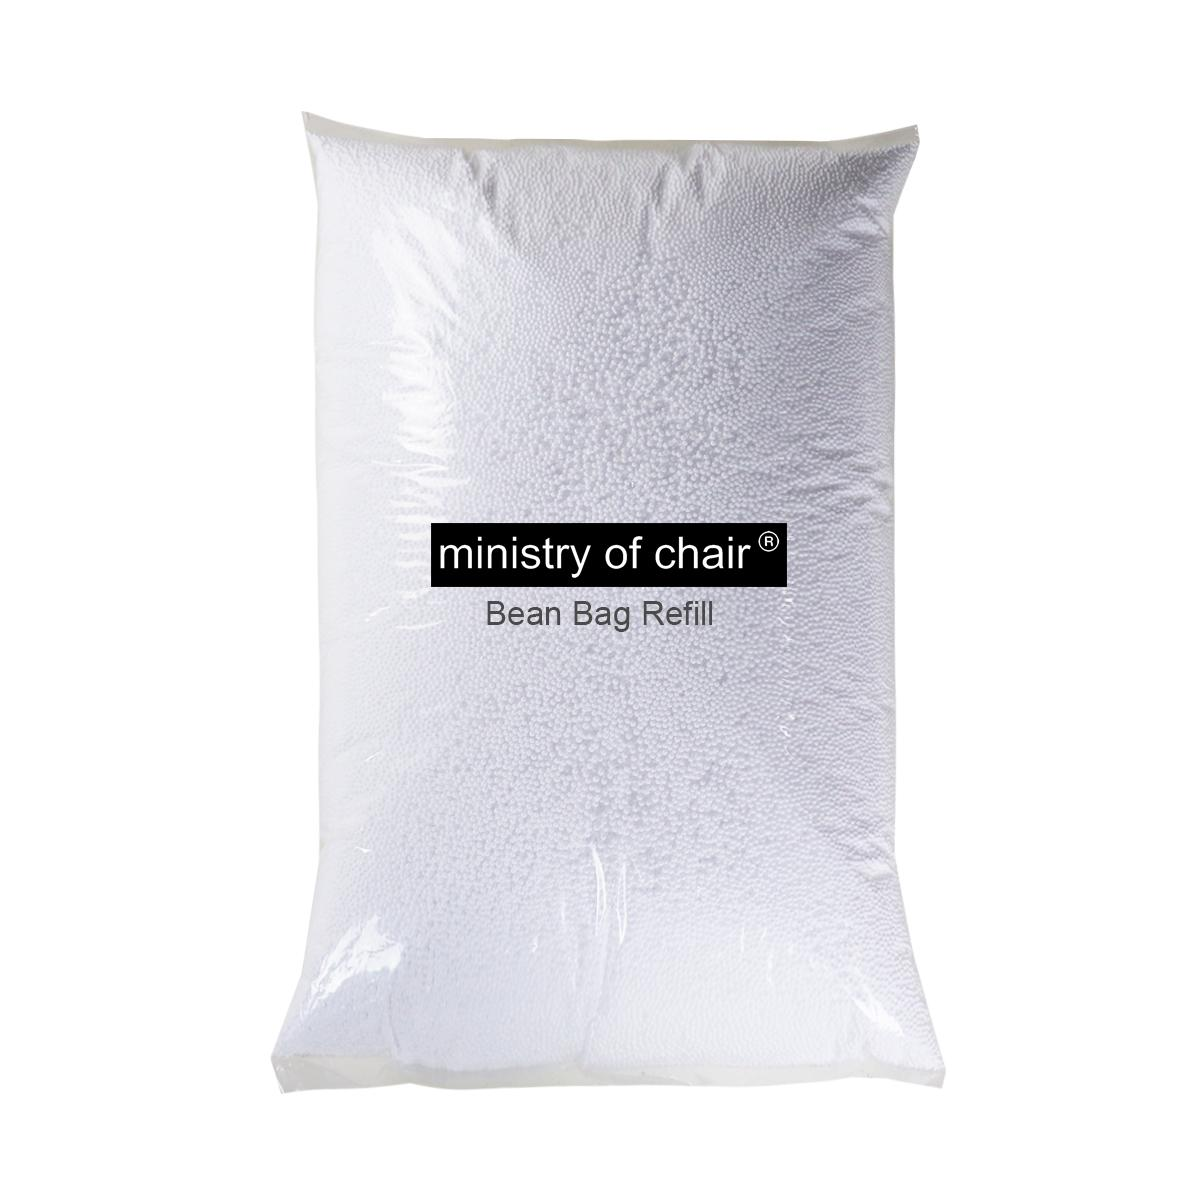 Ministry of Chair Bean Bag Refill 70L Extra Large Bag